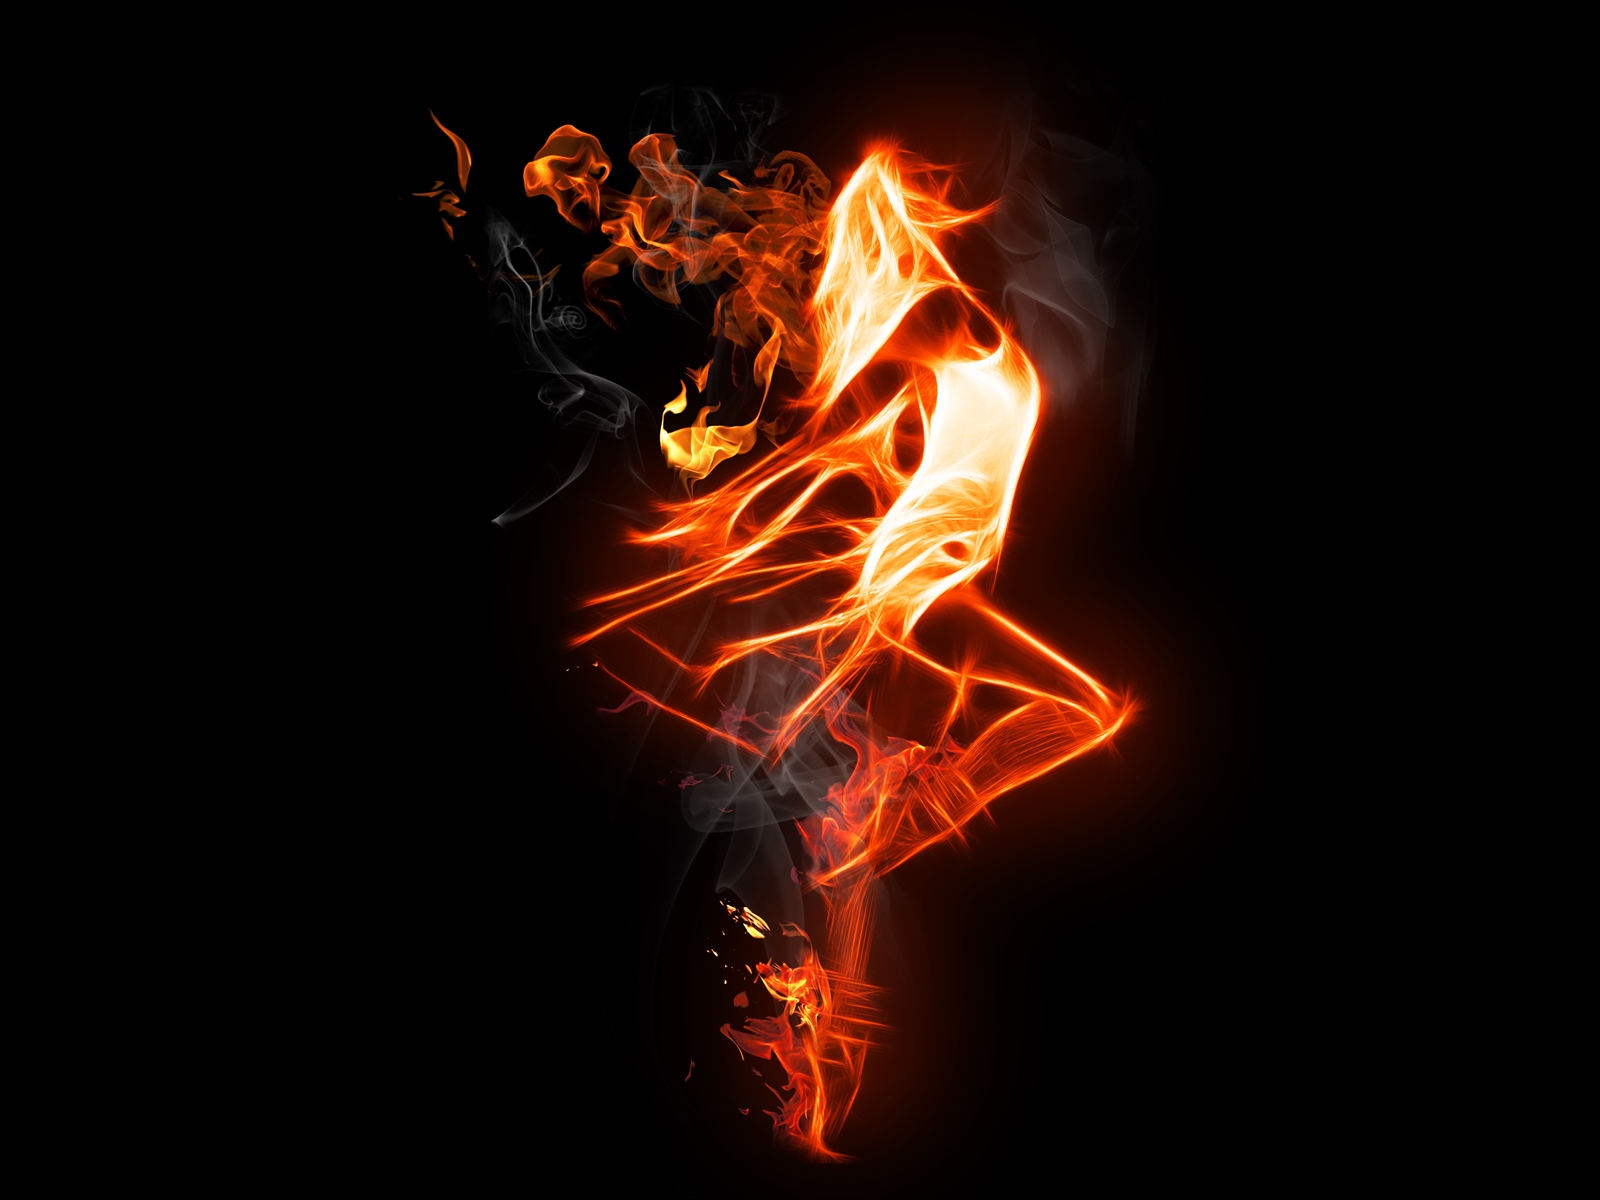 fire 7 wallpaper wallpapersafari